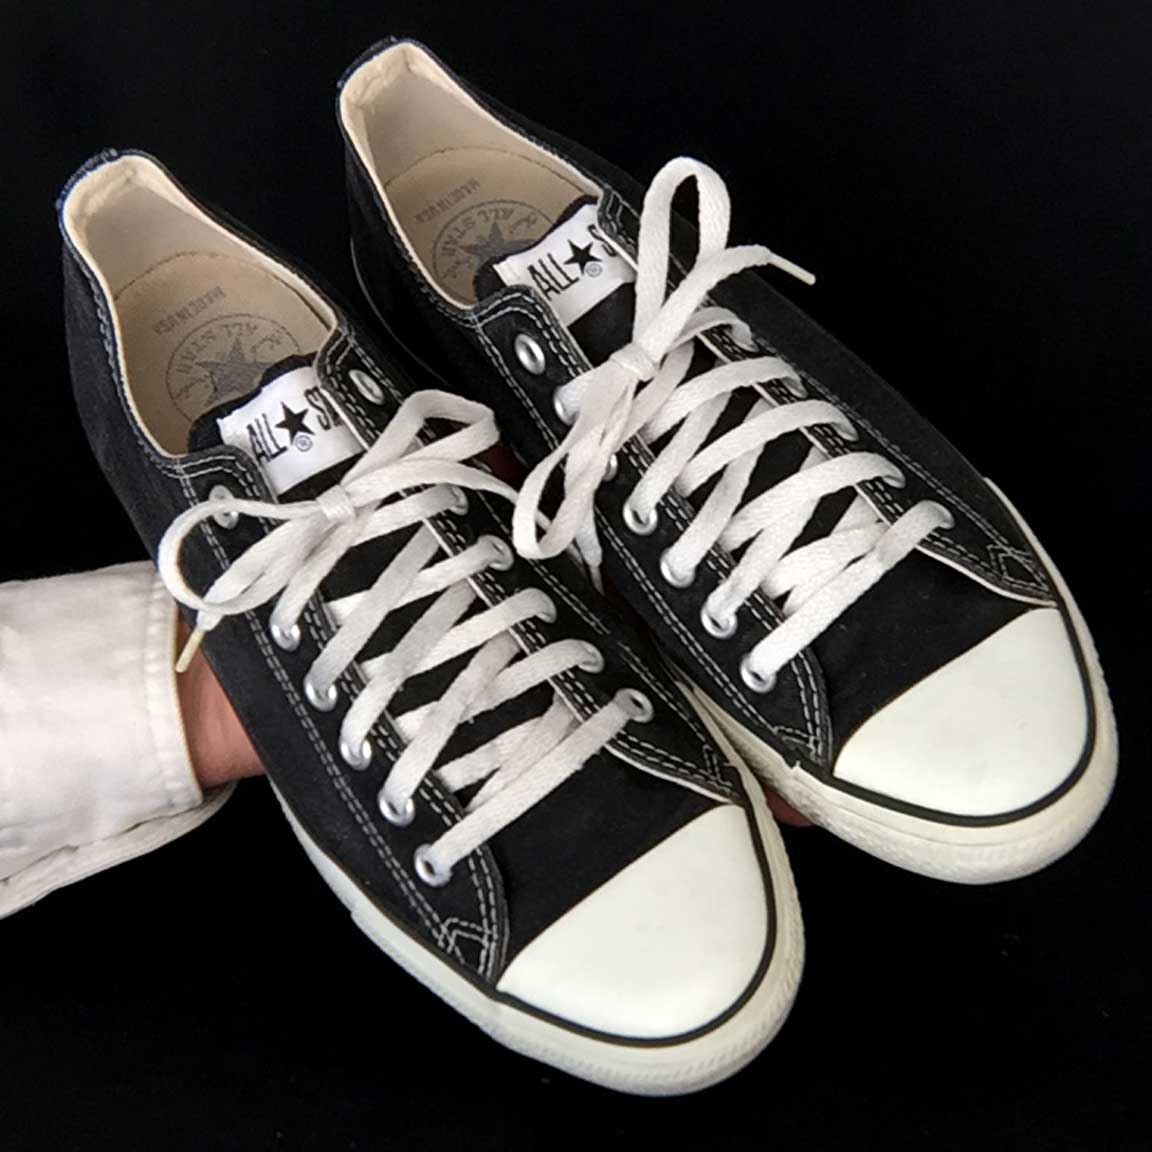 cheap converse all star on sale,cheap converse shoes for sale